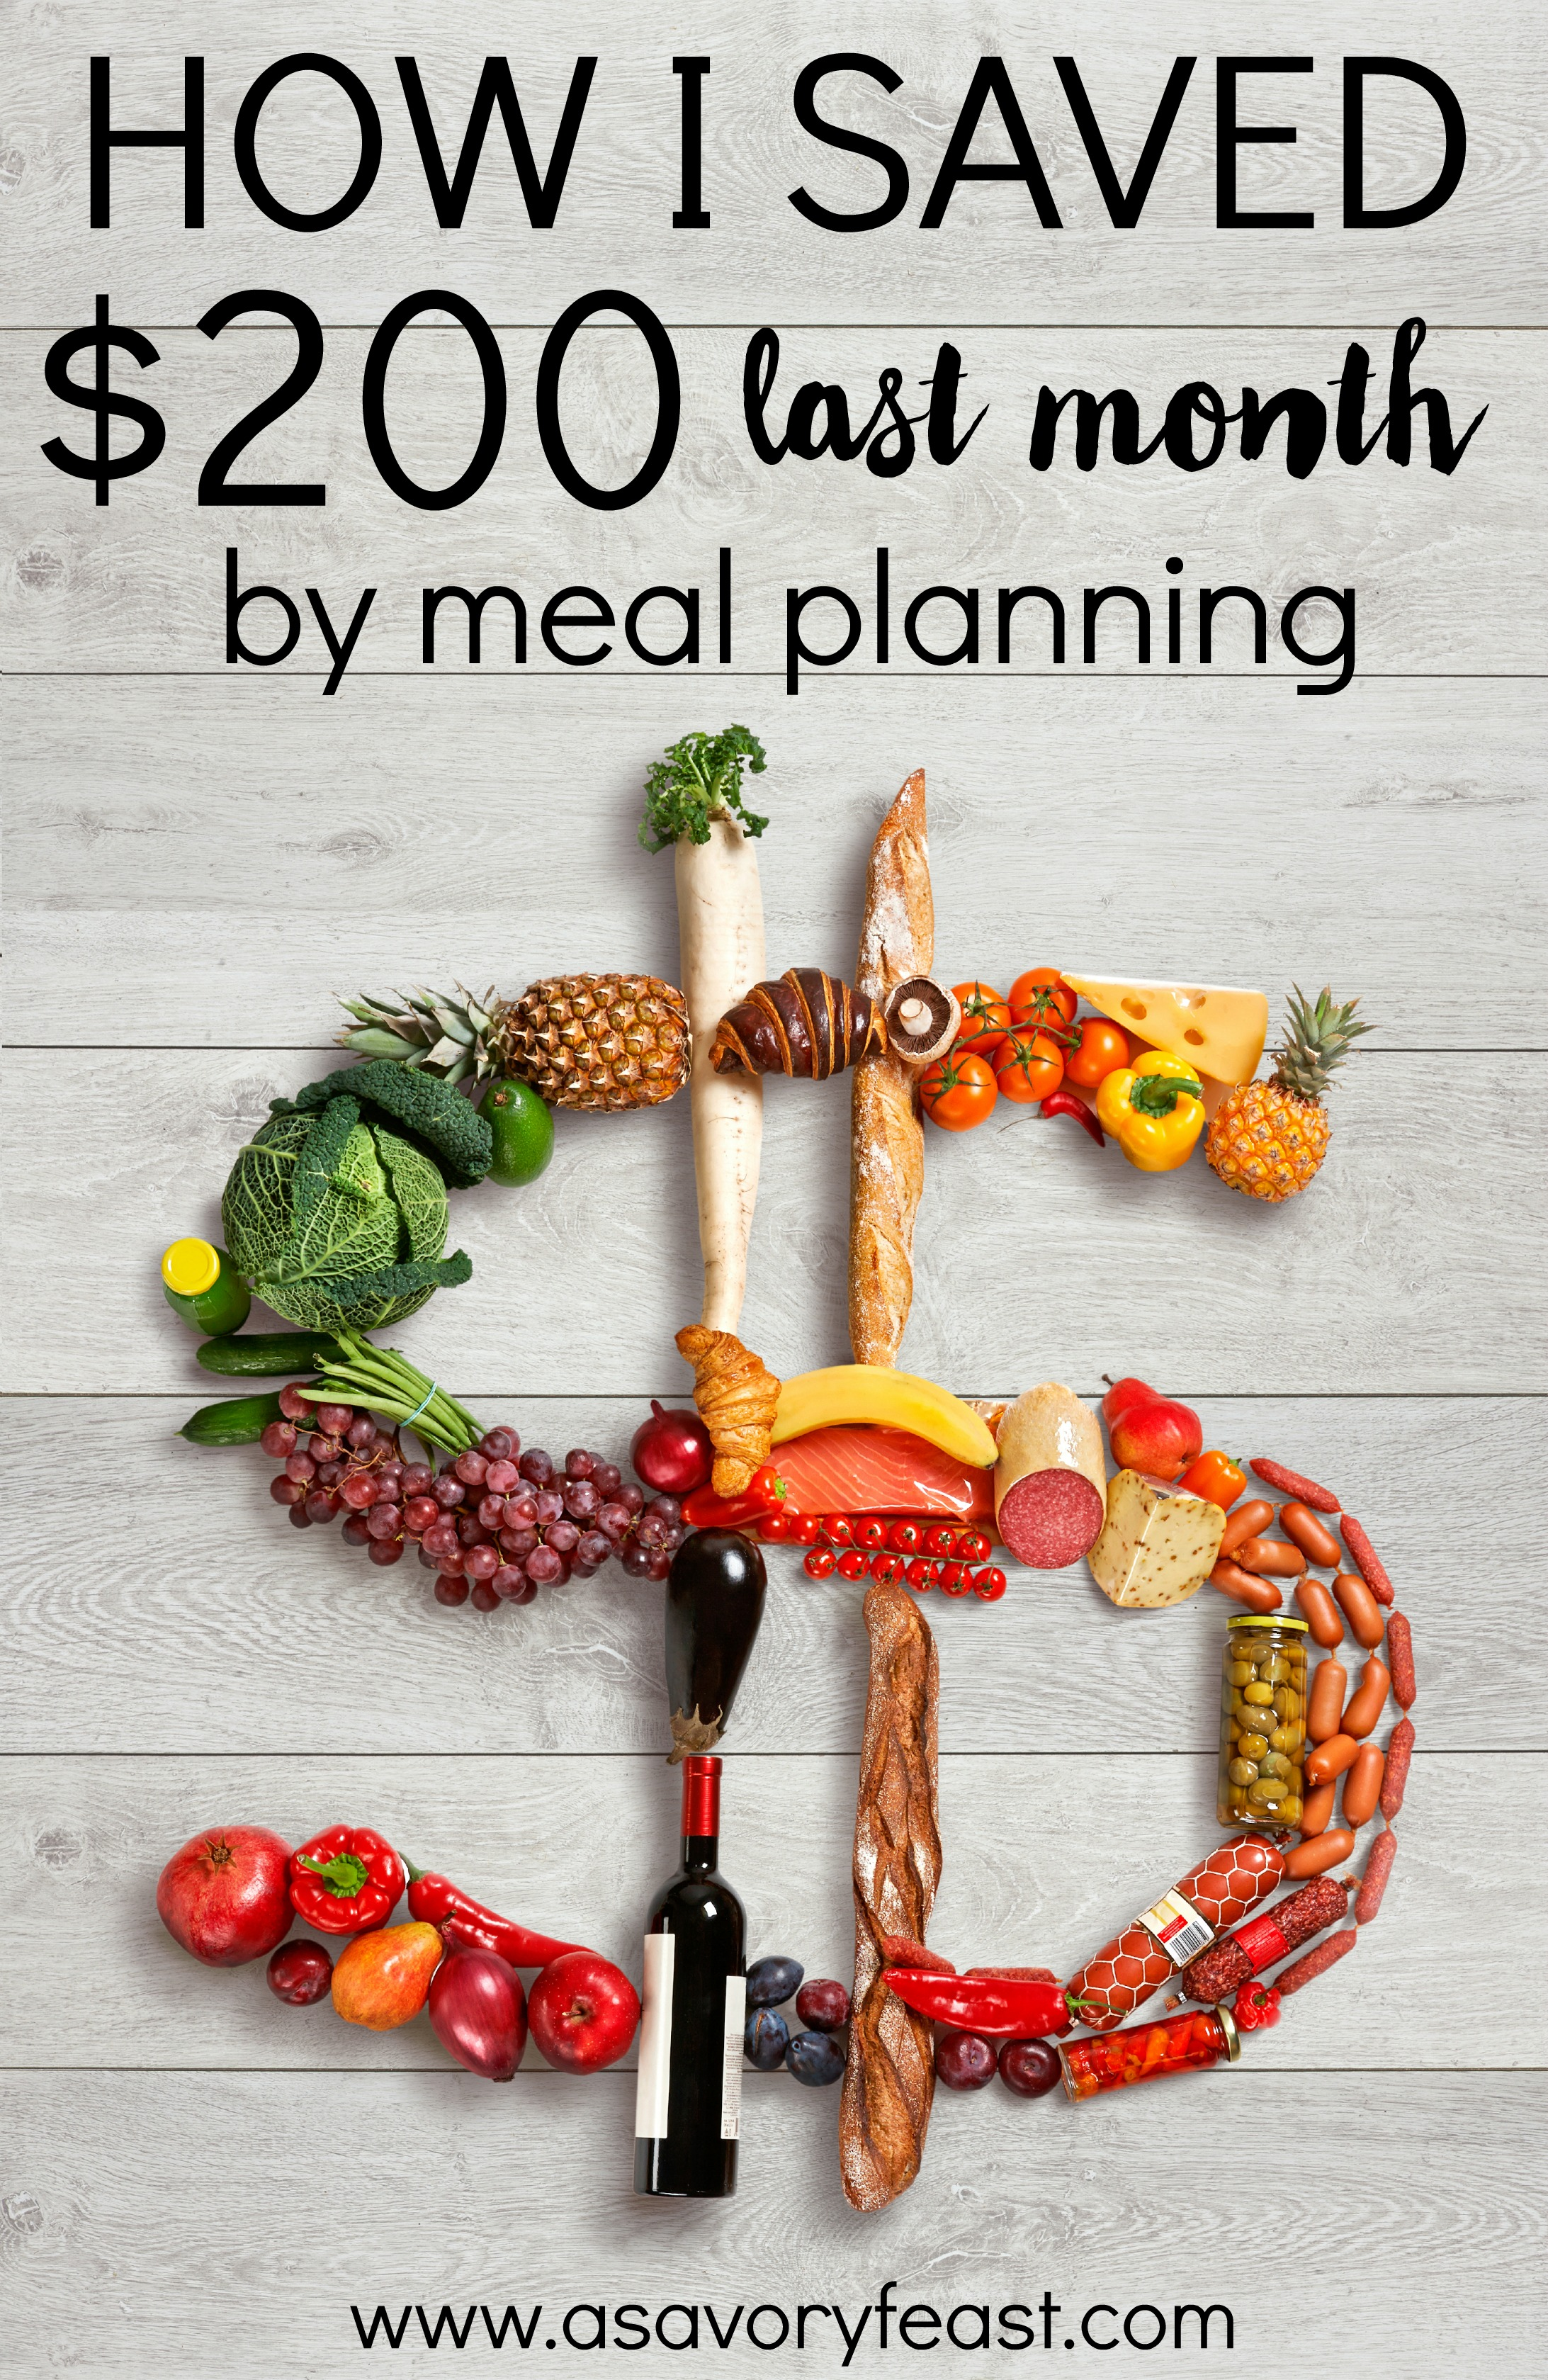 Last month I saved my family over $200, just by meal planning! Learn how and grab some great meal planning printables.